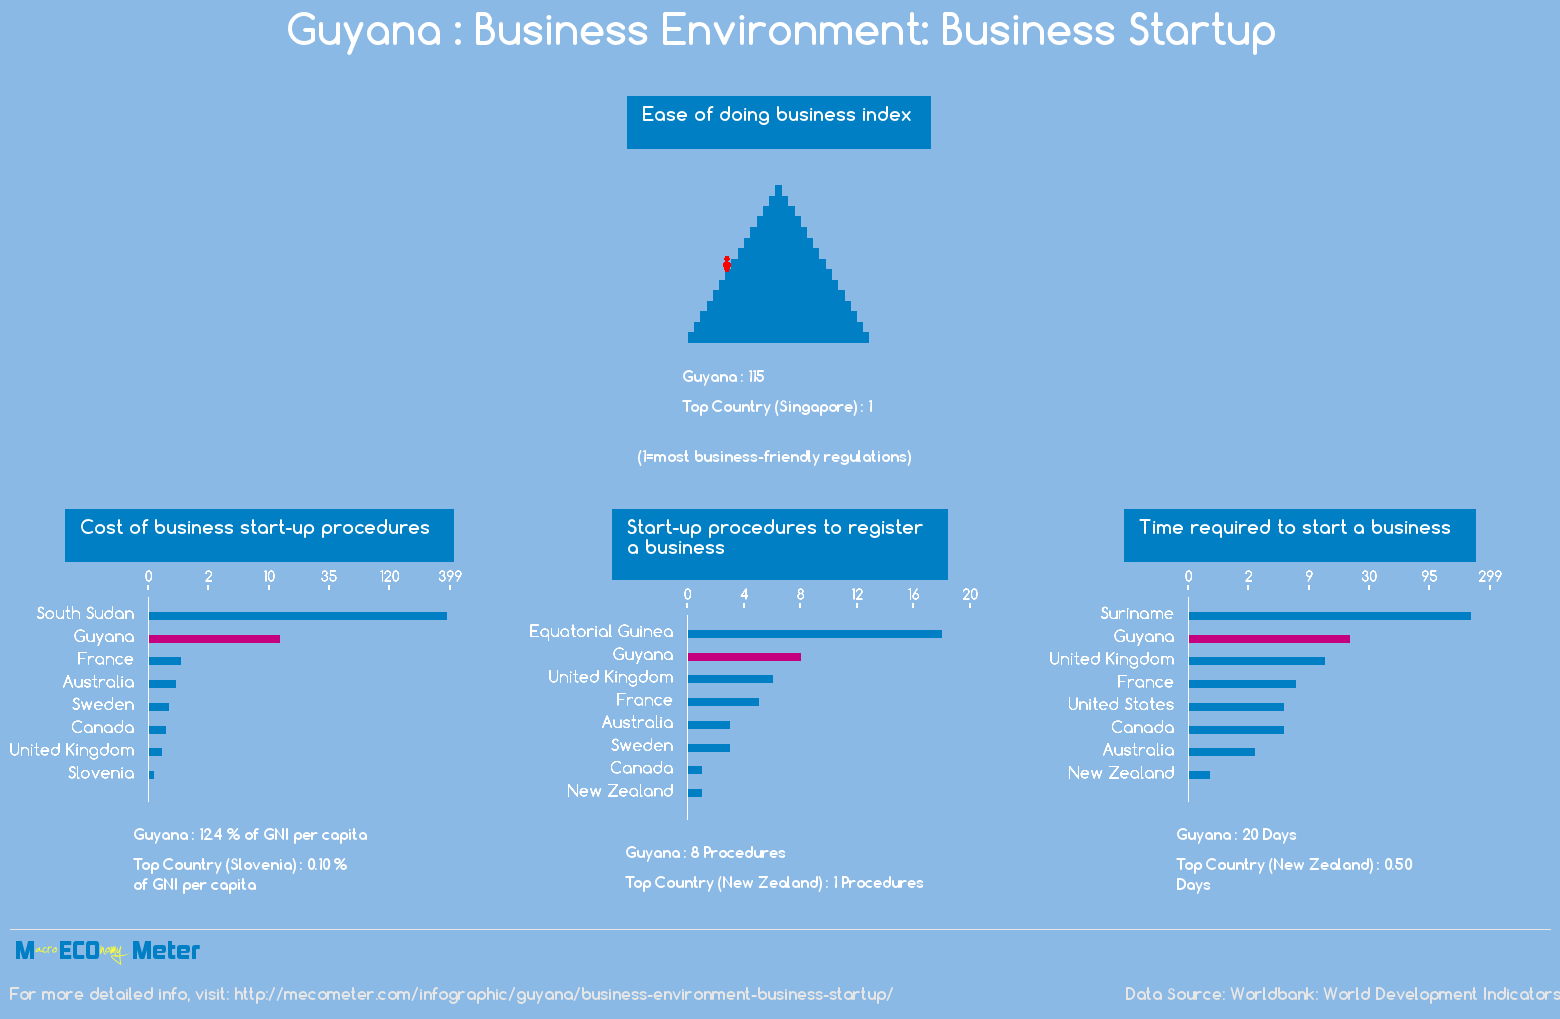 Guyana : Business Environment: Business Startup